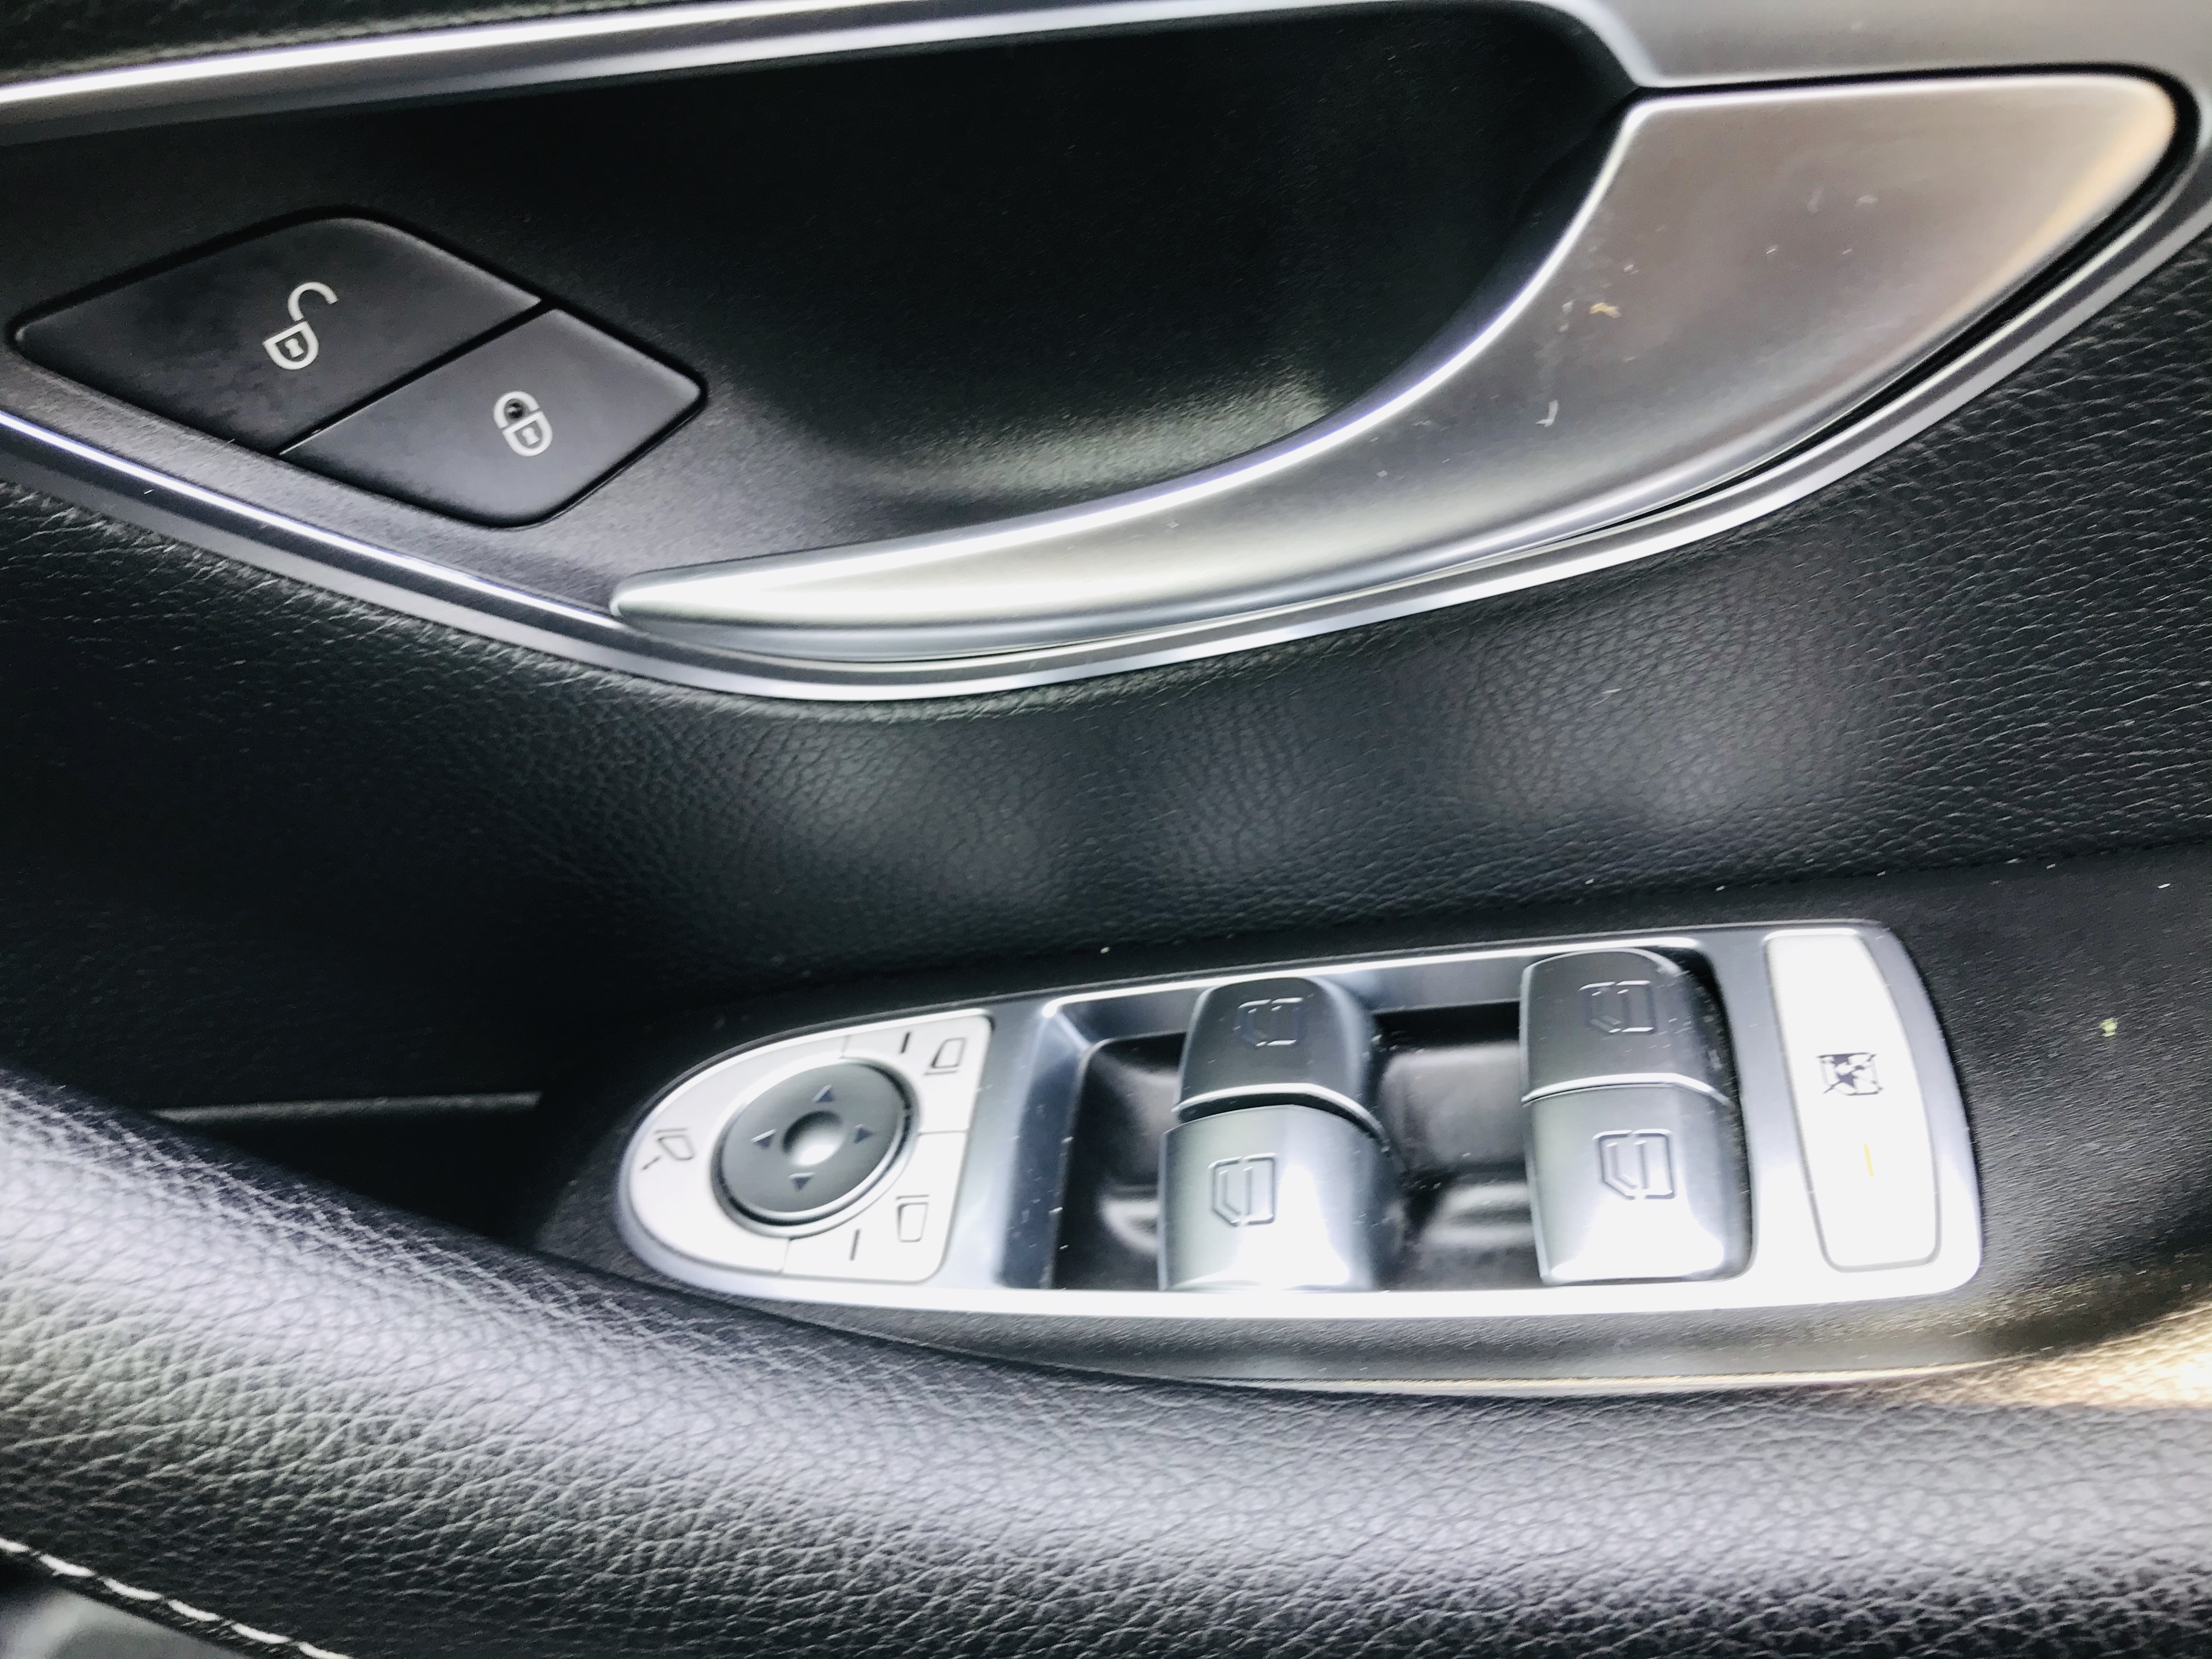 """On Sale MERCEDES E220d """"SPECIAL EQUIPMENT"""" 9G TRONIC (2019 MODEL) 1 OWNER - SAT NAV - LEATHER - WOW! - Image 20 of 26"""